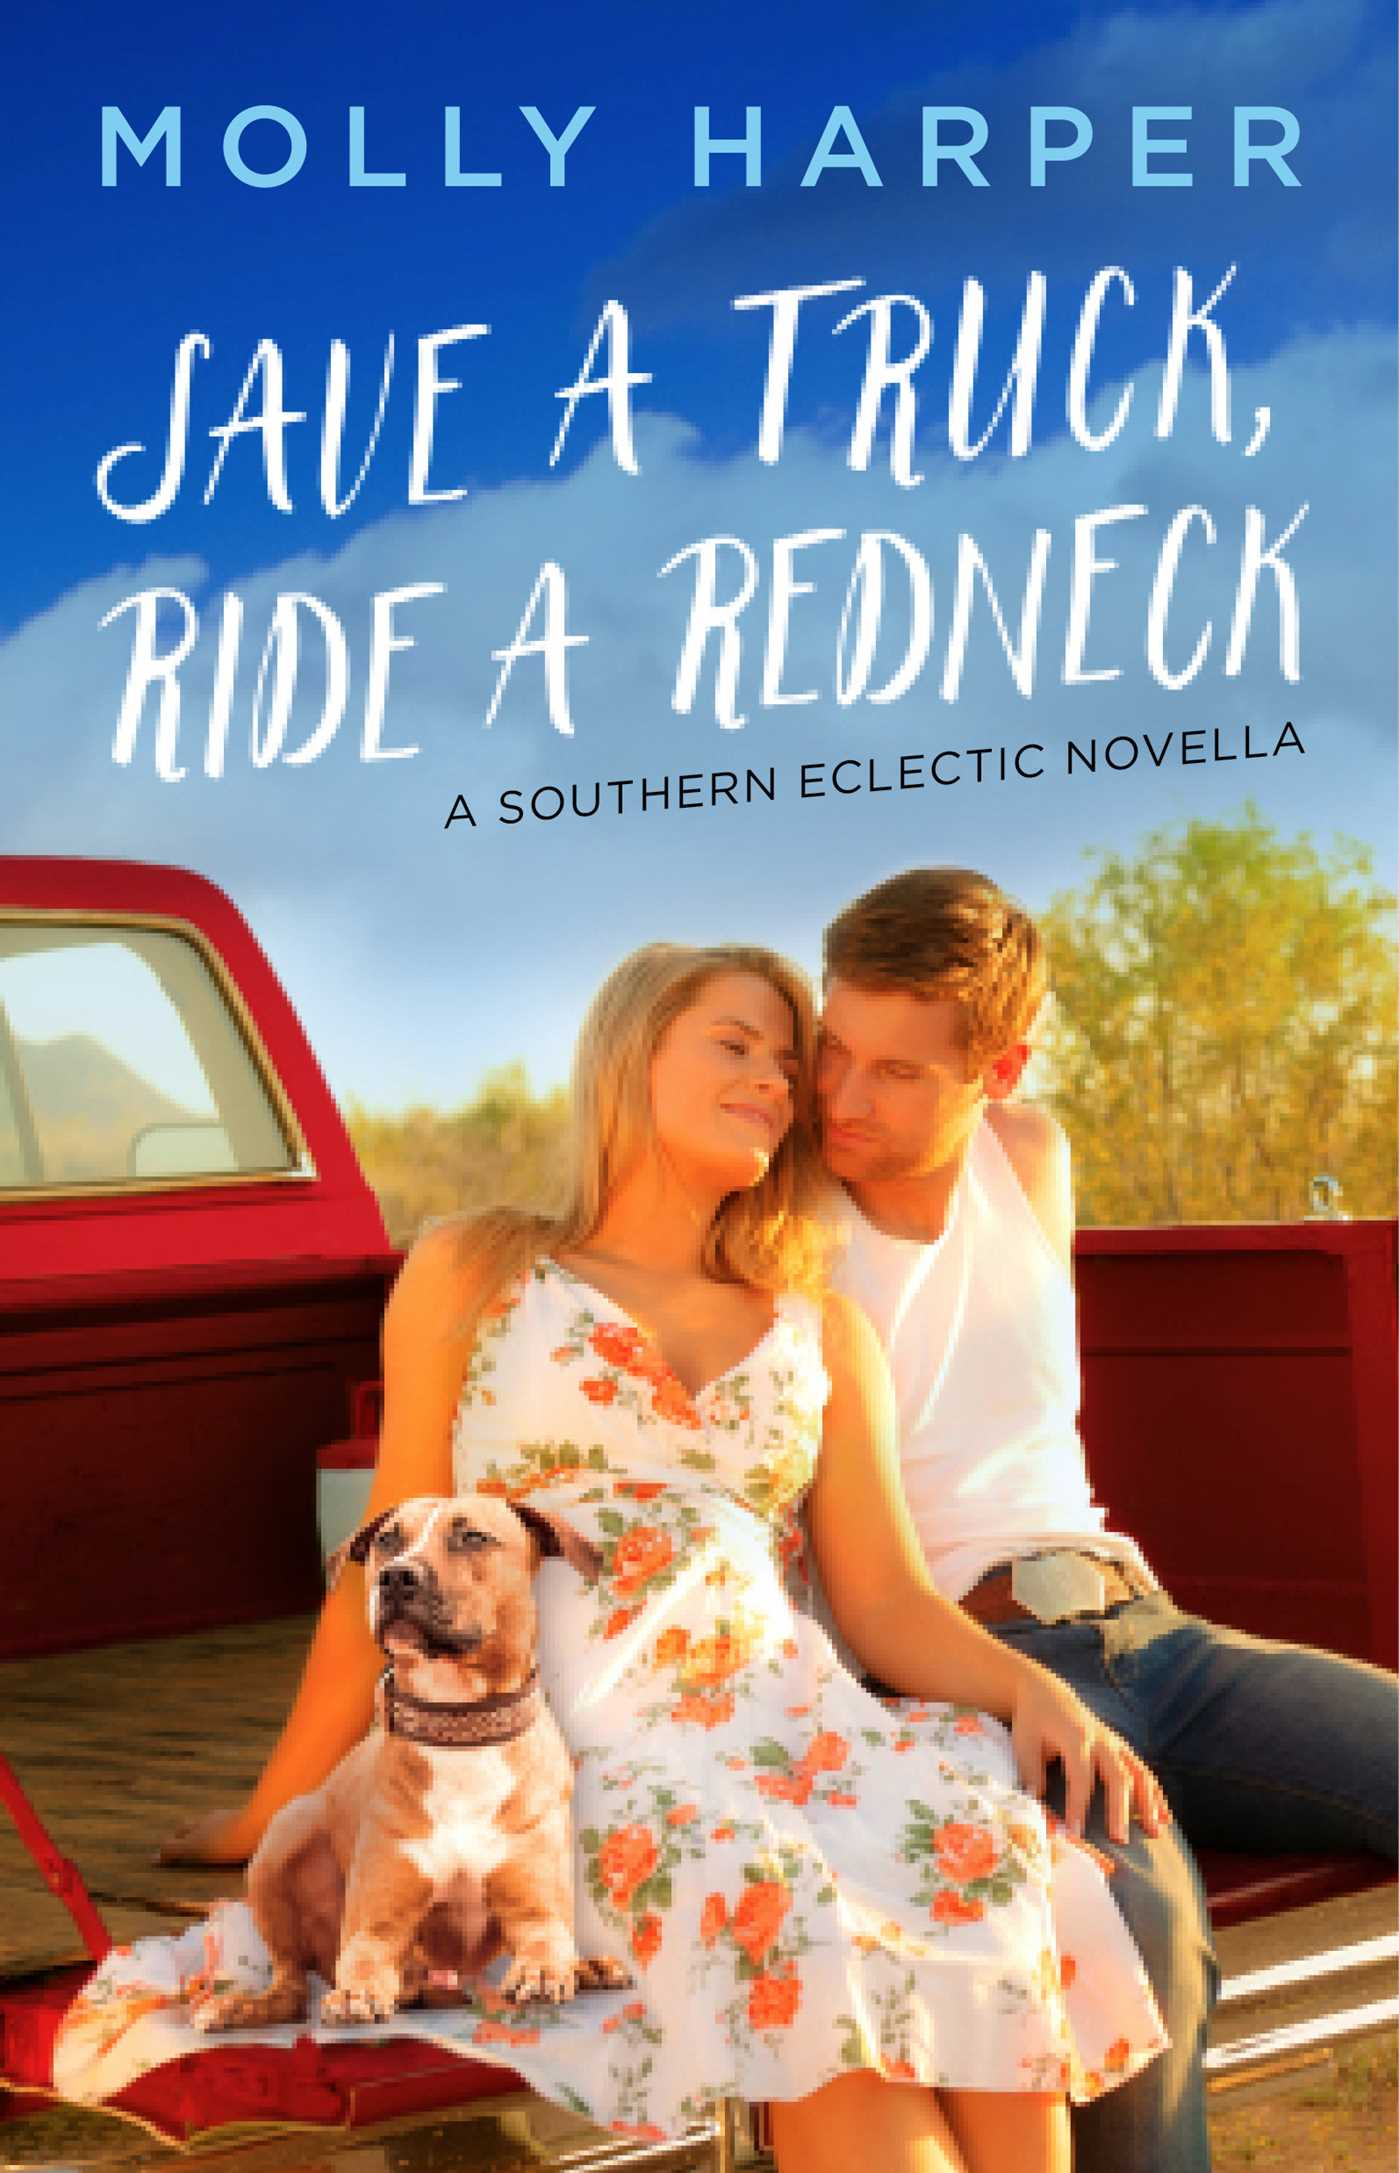 Save a Truck, Ride a Redneck book cover